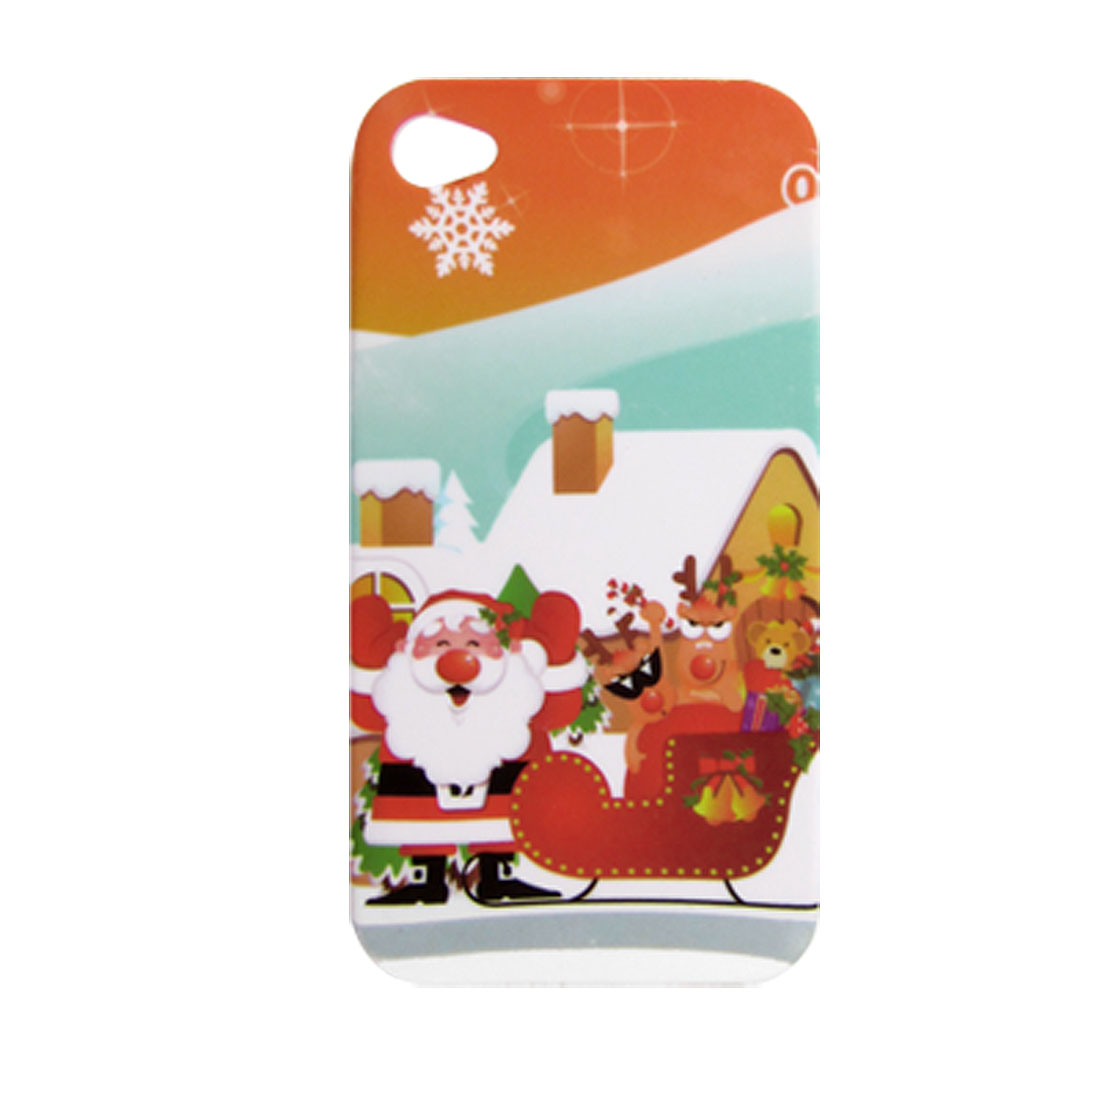 Santa Clause w Sled Pattern Rubberized Hard Plastic Back Case for iPhone 4 4G